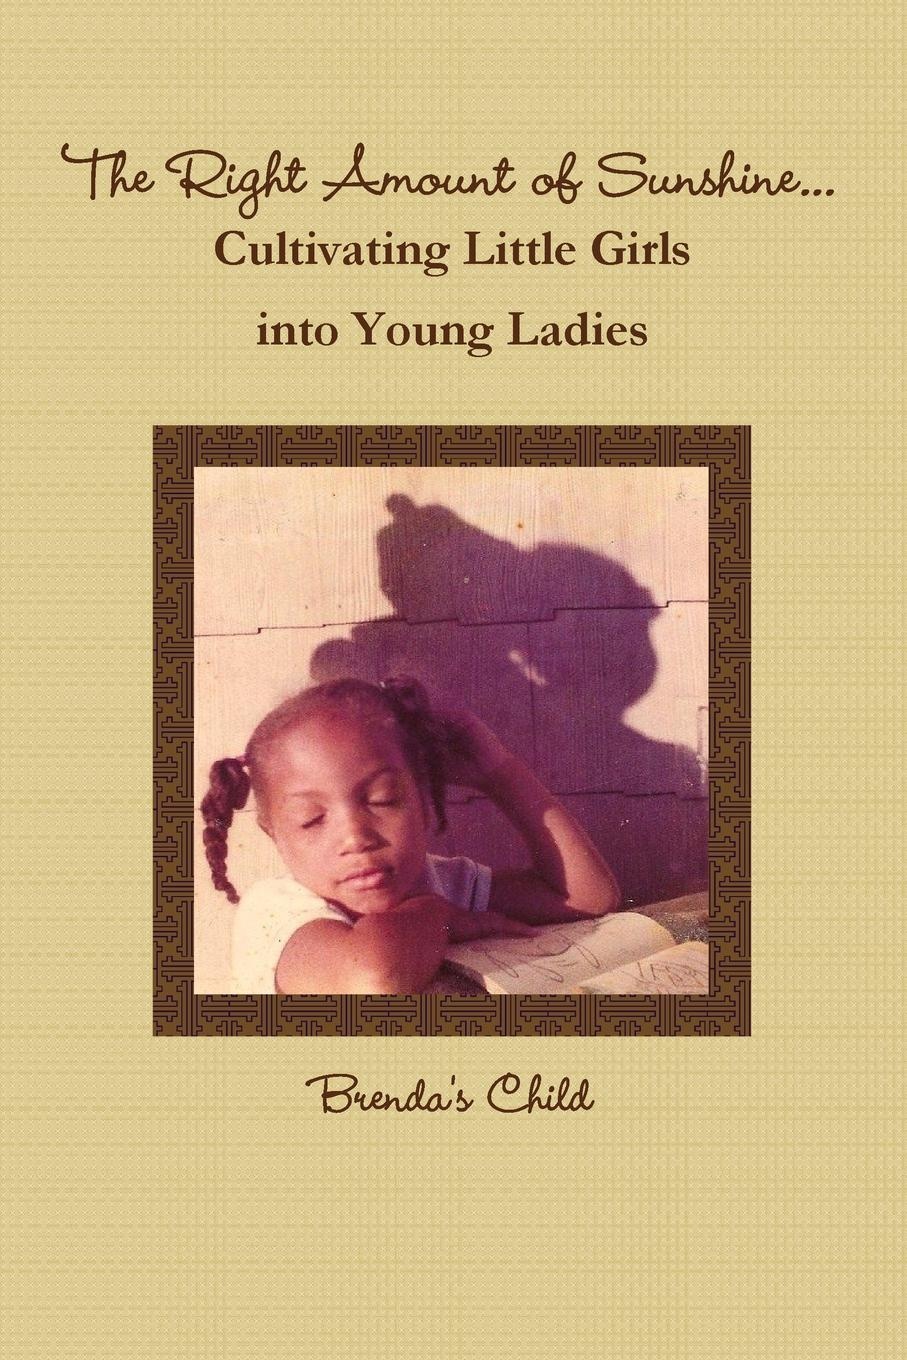 Brenda's Child The Right Amount of Sunshine...Cultivating Little Girls into Young Ladies